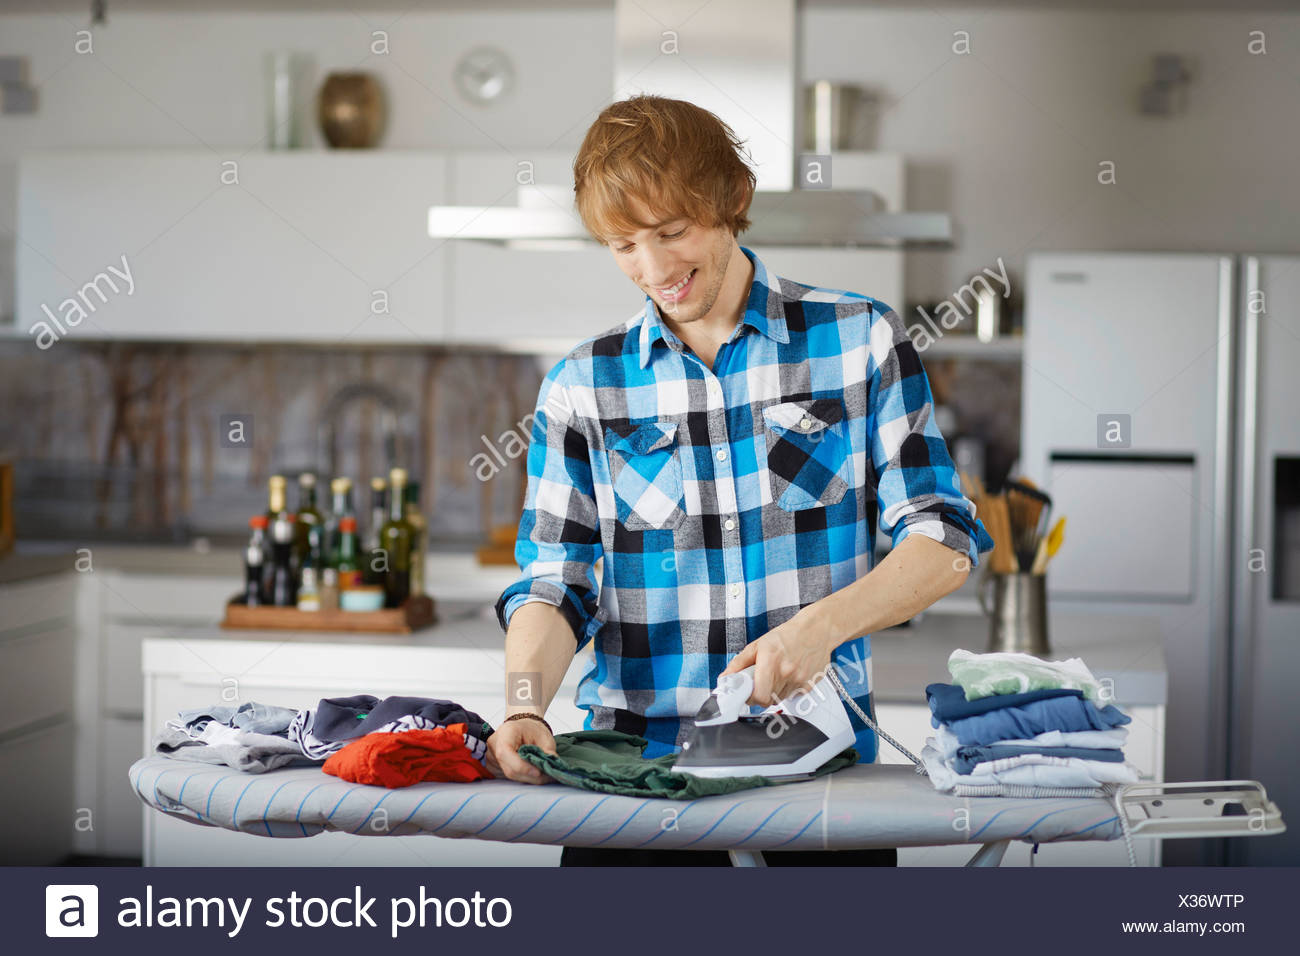 Father ironing child's clothes - Stock Image